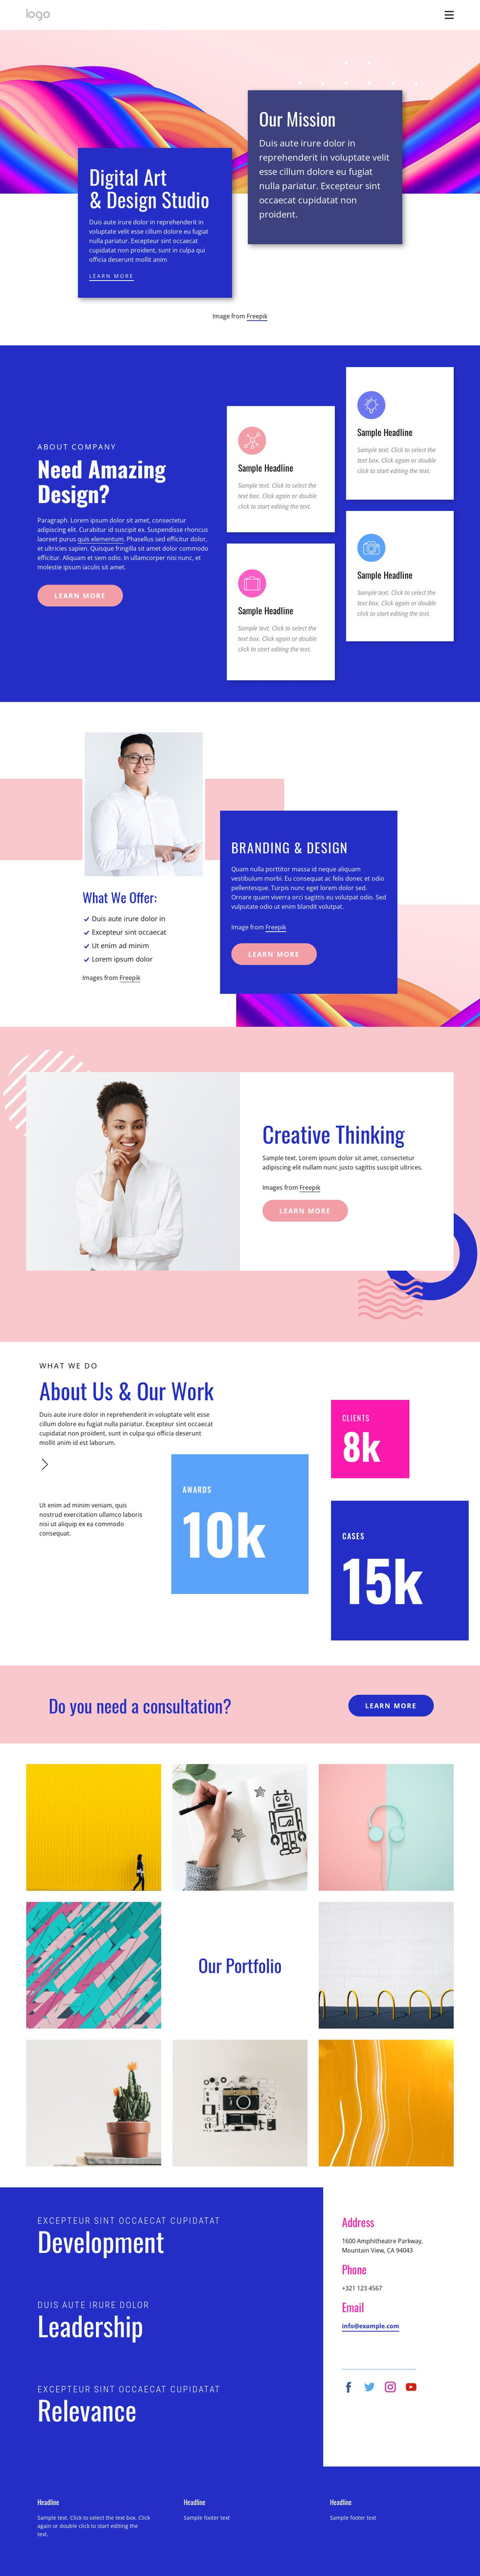 Create content that connects Web Design